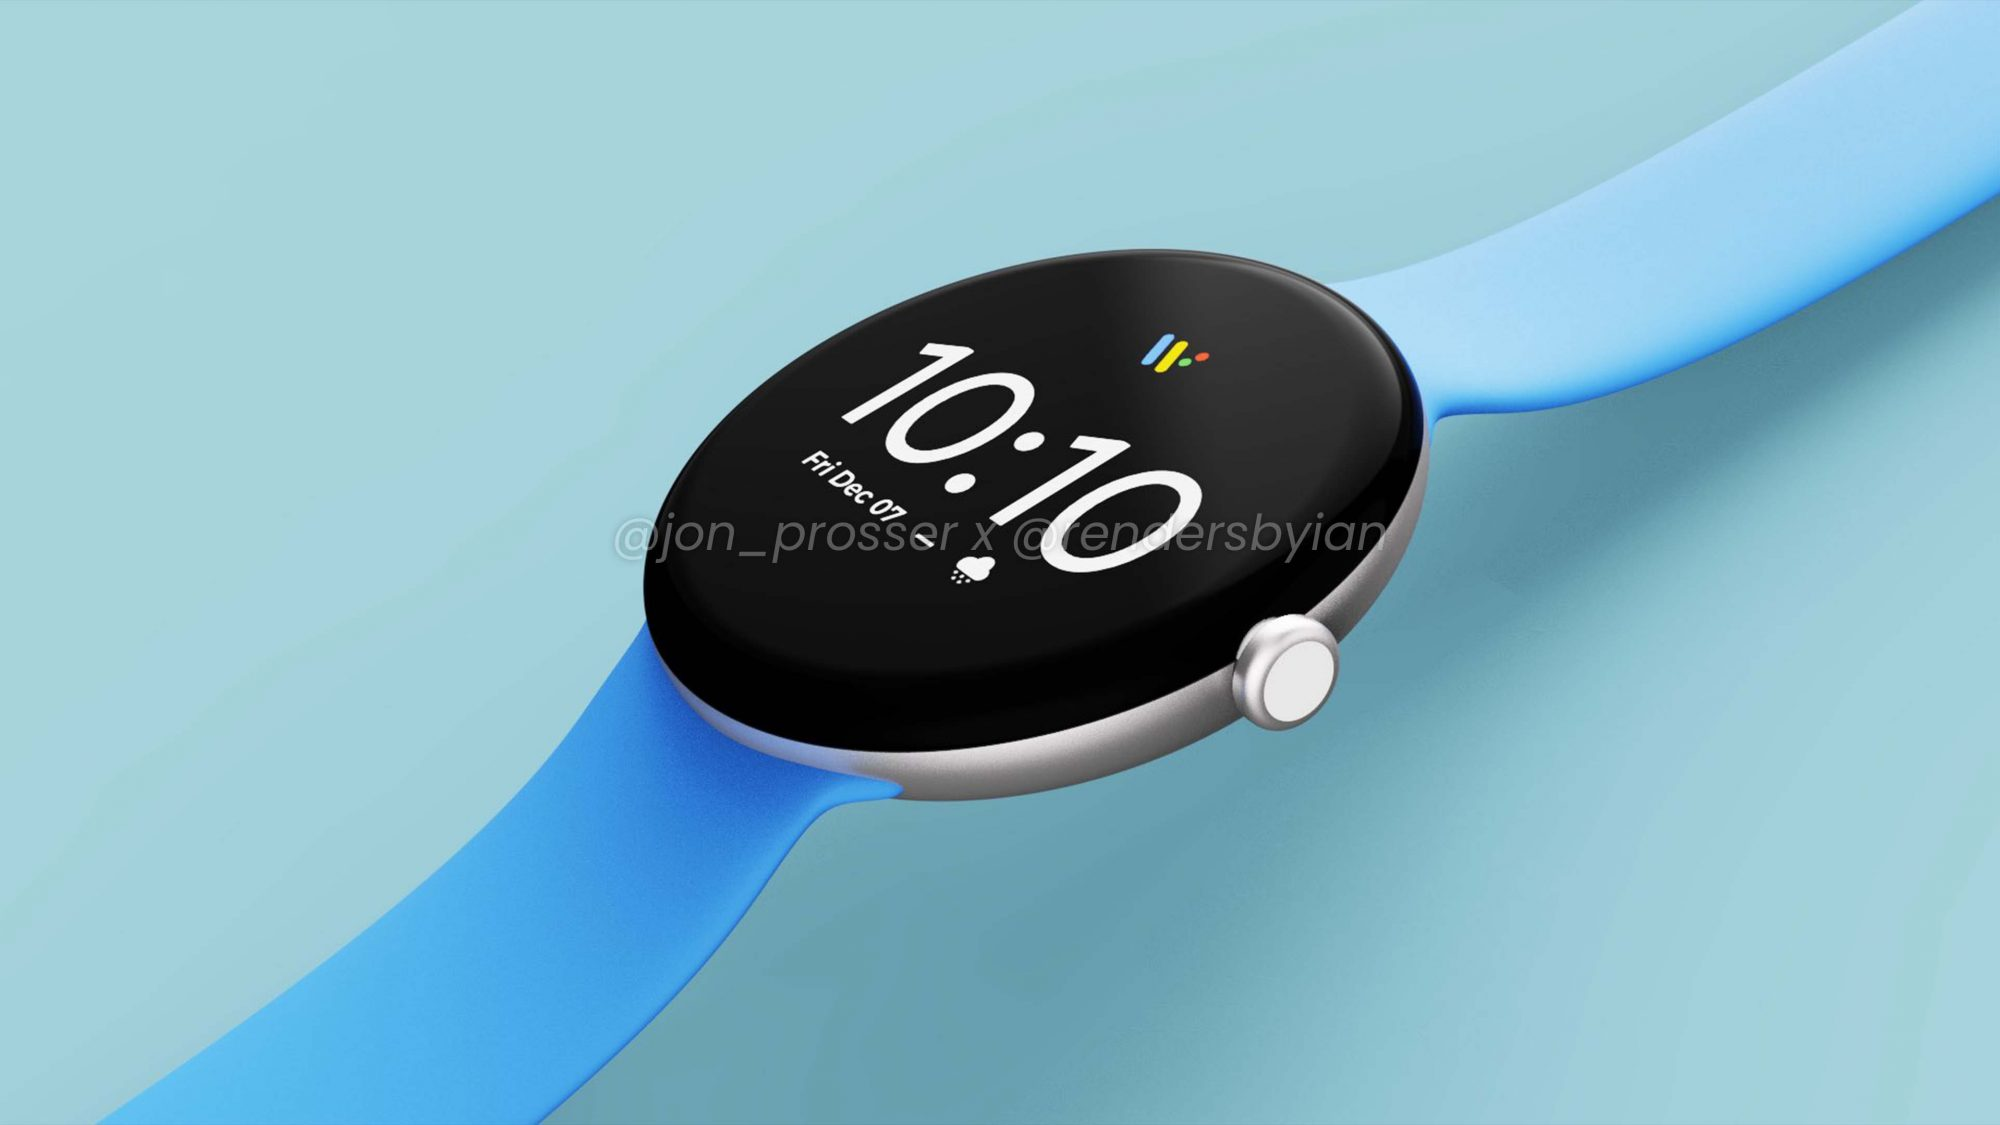 With so many Pixel 6 leaks, the Pixel Watch silence is deafening